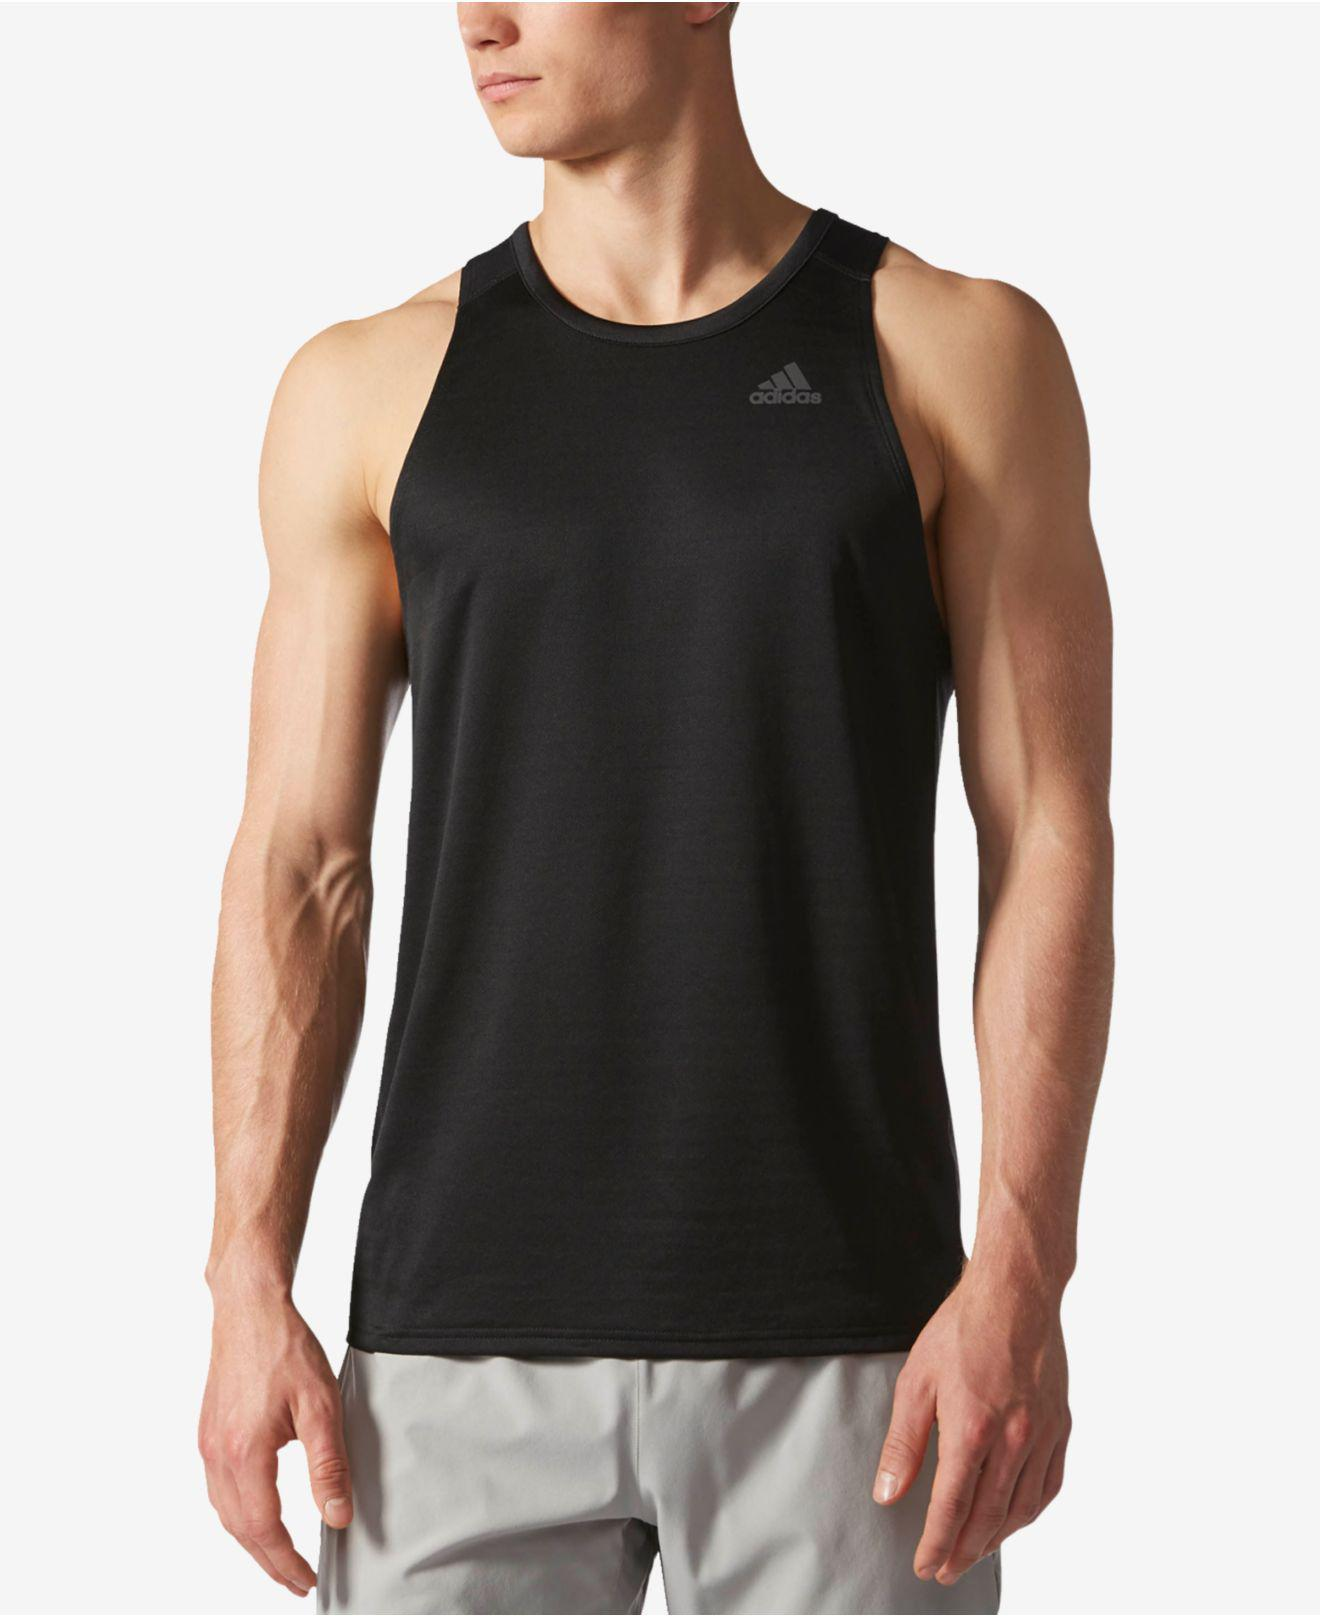 Lyst Adidas hombre 's Racerback ClimaLite® Tank Top In negro para hombres